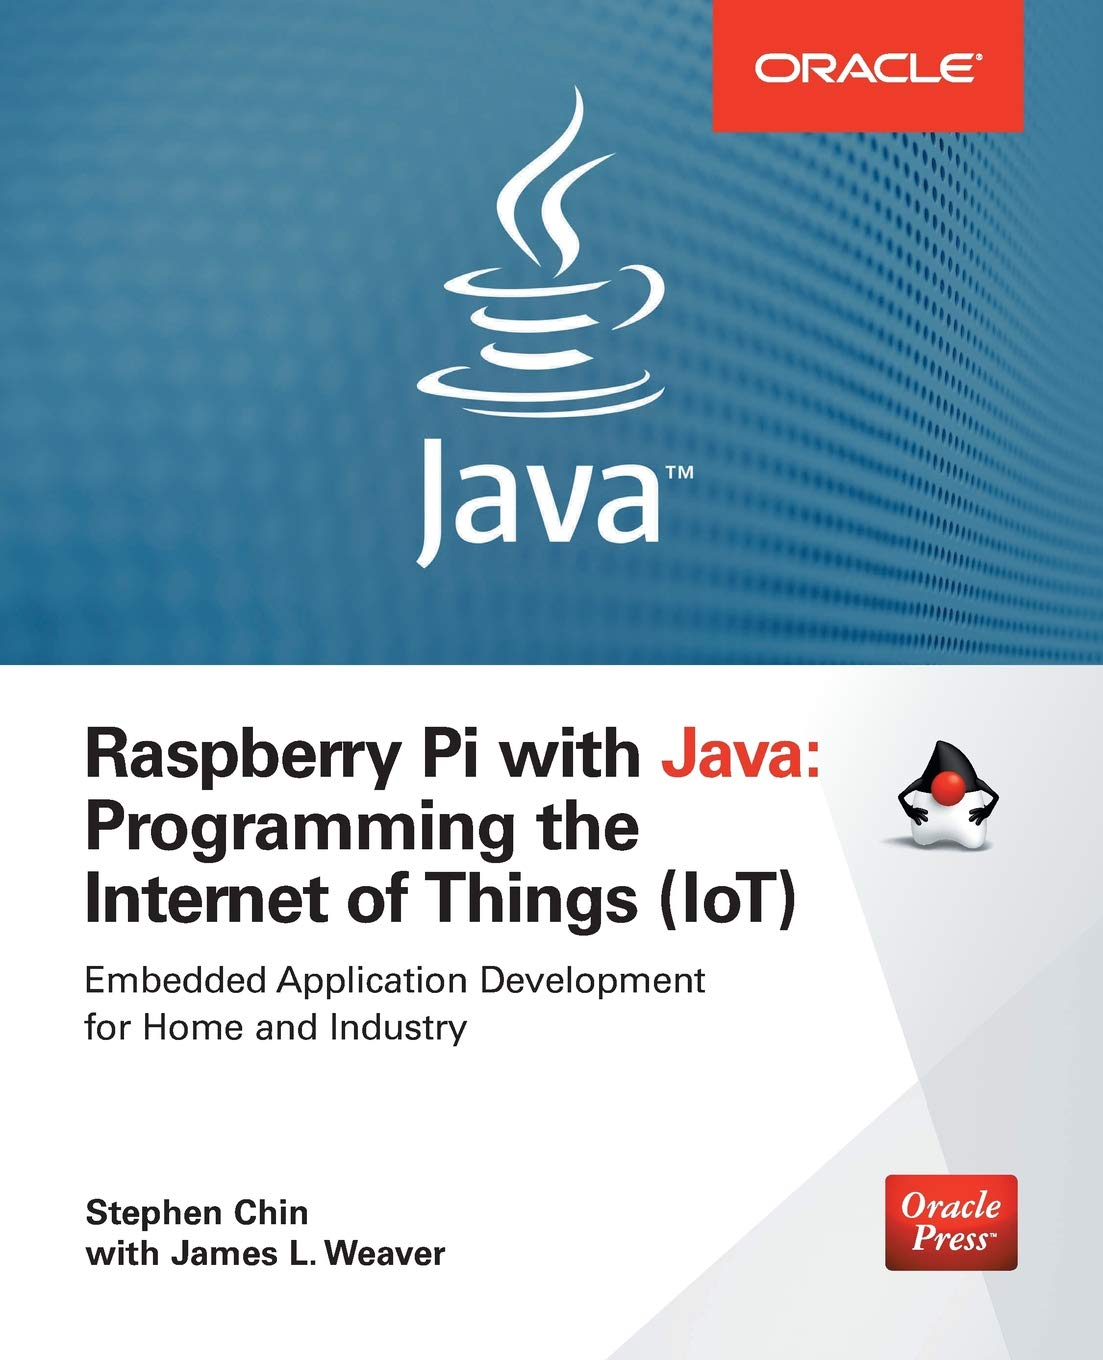 Raspberry Pi With Java Programming The Internet Of Things Iot Wiringpi Examples Oracle Press Stephen Chin James Weaver 9780071842013 Books